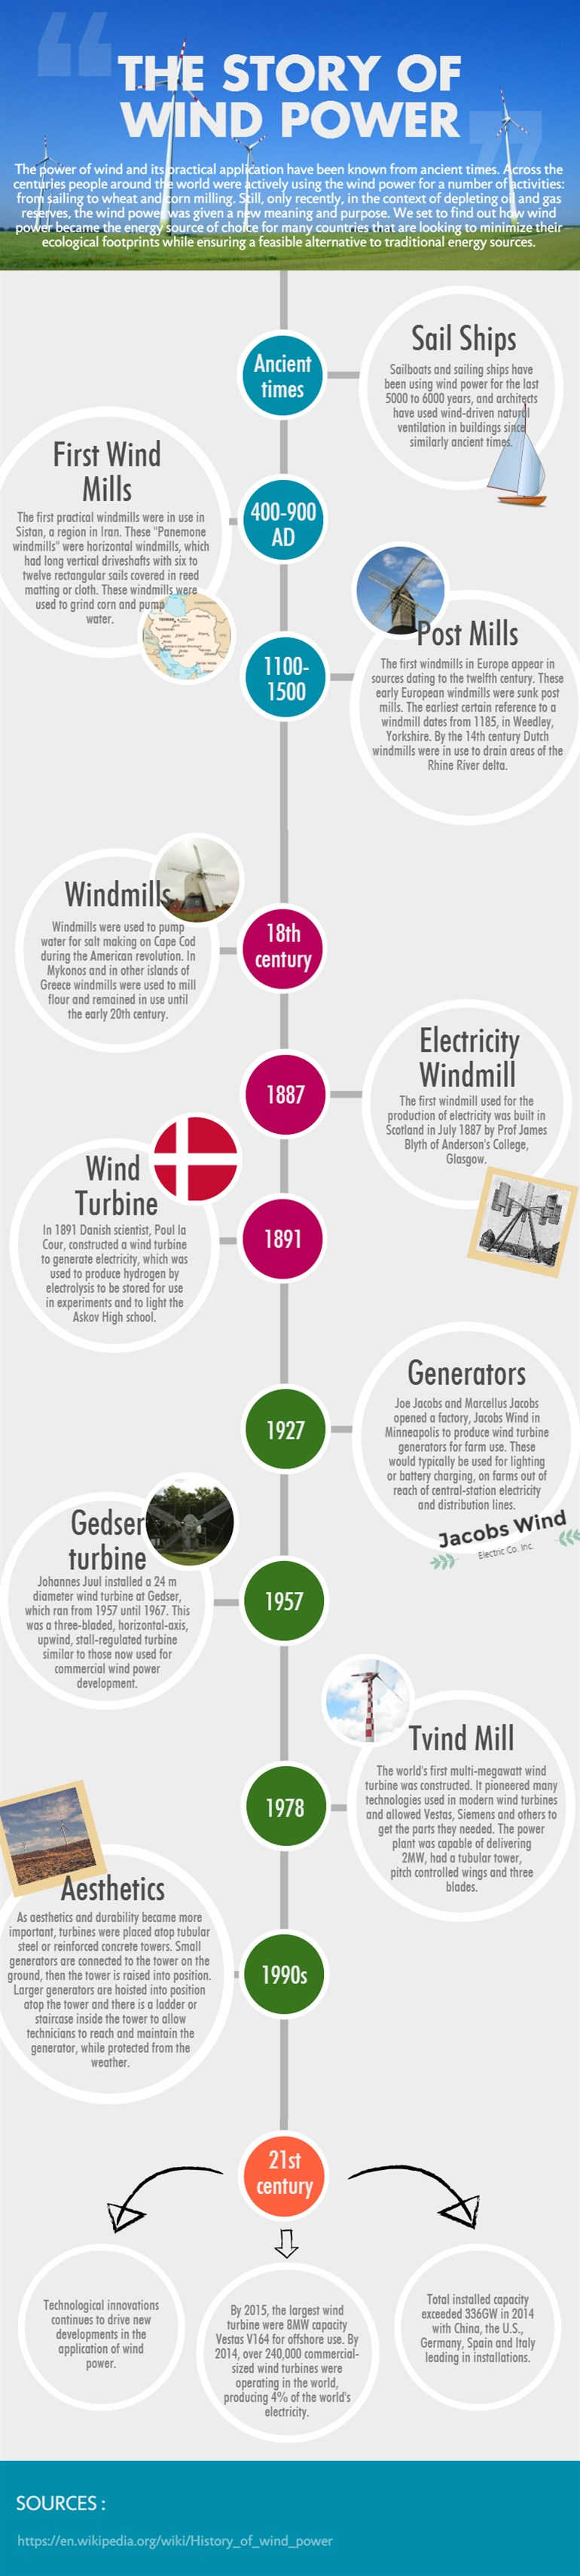 Wind Power History